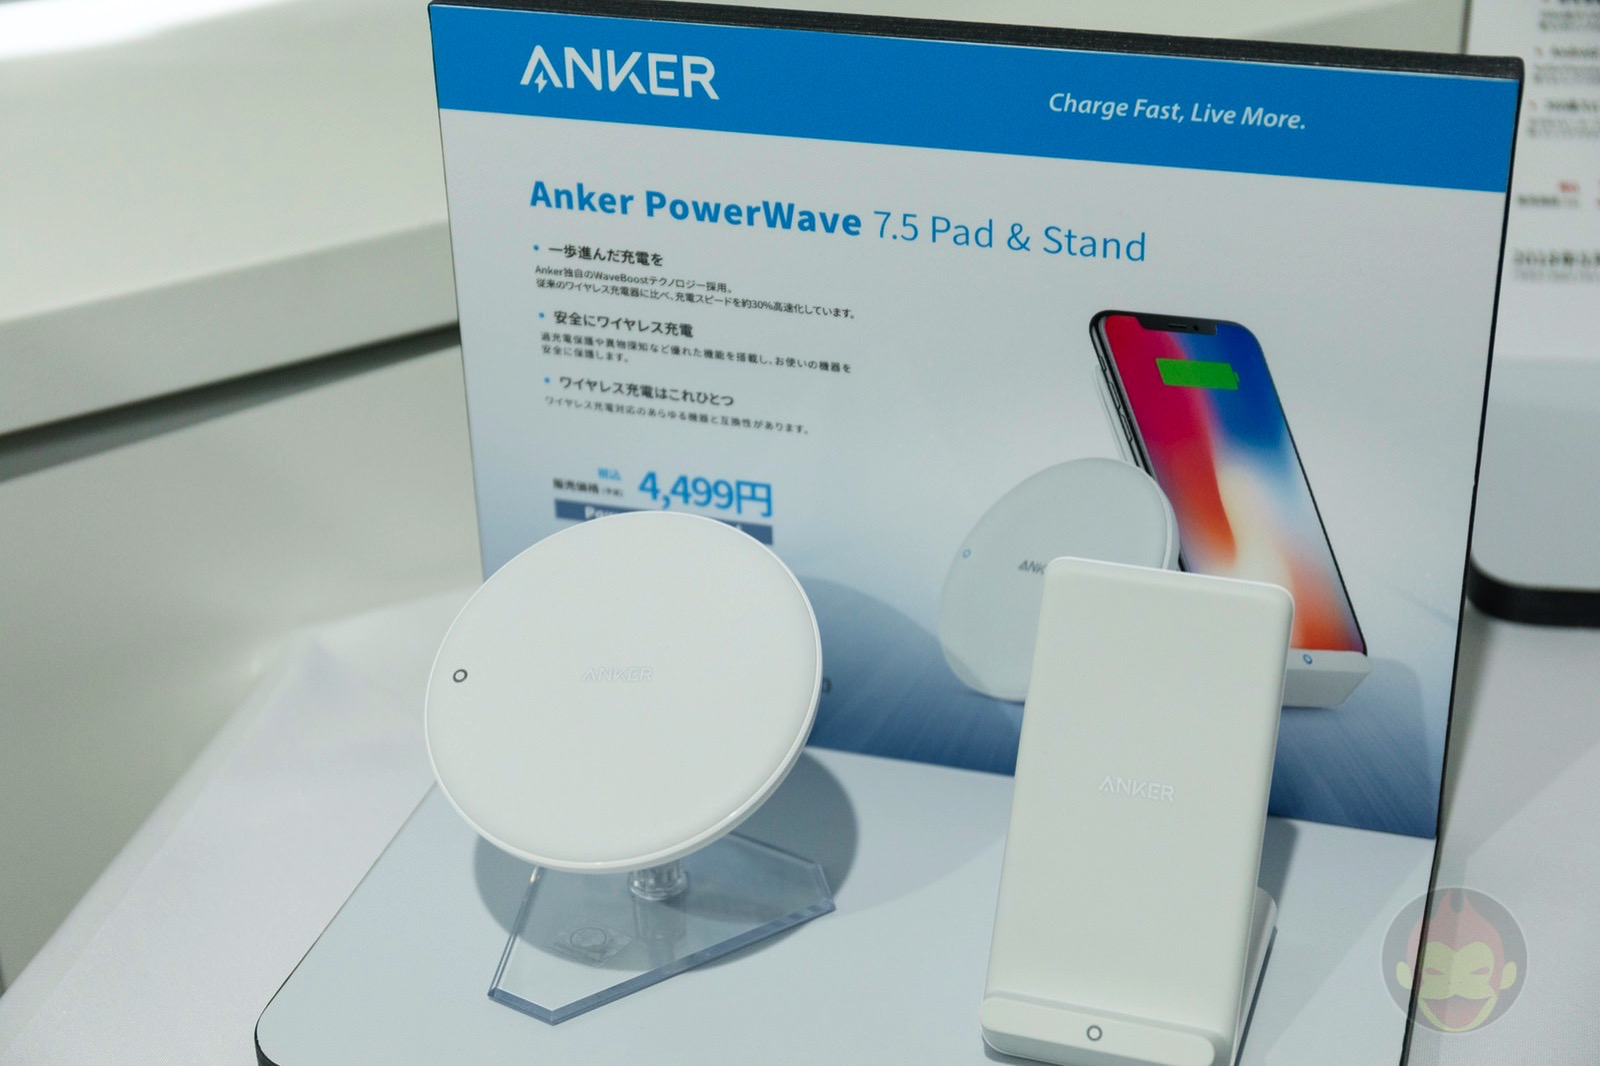 Anker PowerWave Pad and Stand 01